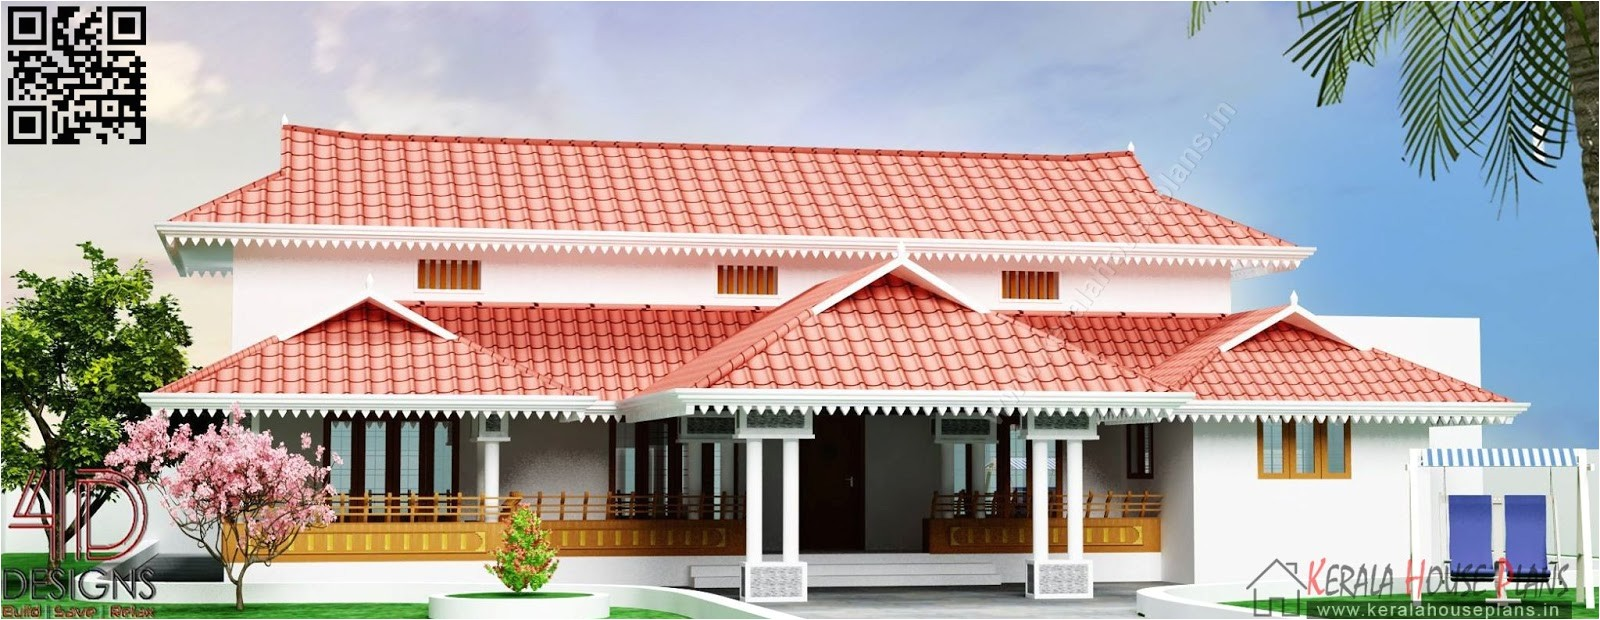 Kerala Traditional Home Plans with Photos | plougonver.com on traditional commercial design, veranda designs, art designs, decorating designs, traditional 2 story house, new york designs, mom caves designs, traditional patio design, traditional staircase design, small lot balinese house designs, traditional scandinavian design, traditional fashion, traditional architecture, traditional foyer design, exquisite crystal designs, traditional beach house, scrapbook layouts and designs, valentine's day card designs, cubical house plans and designs, traditional style homes,